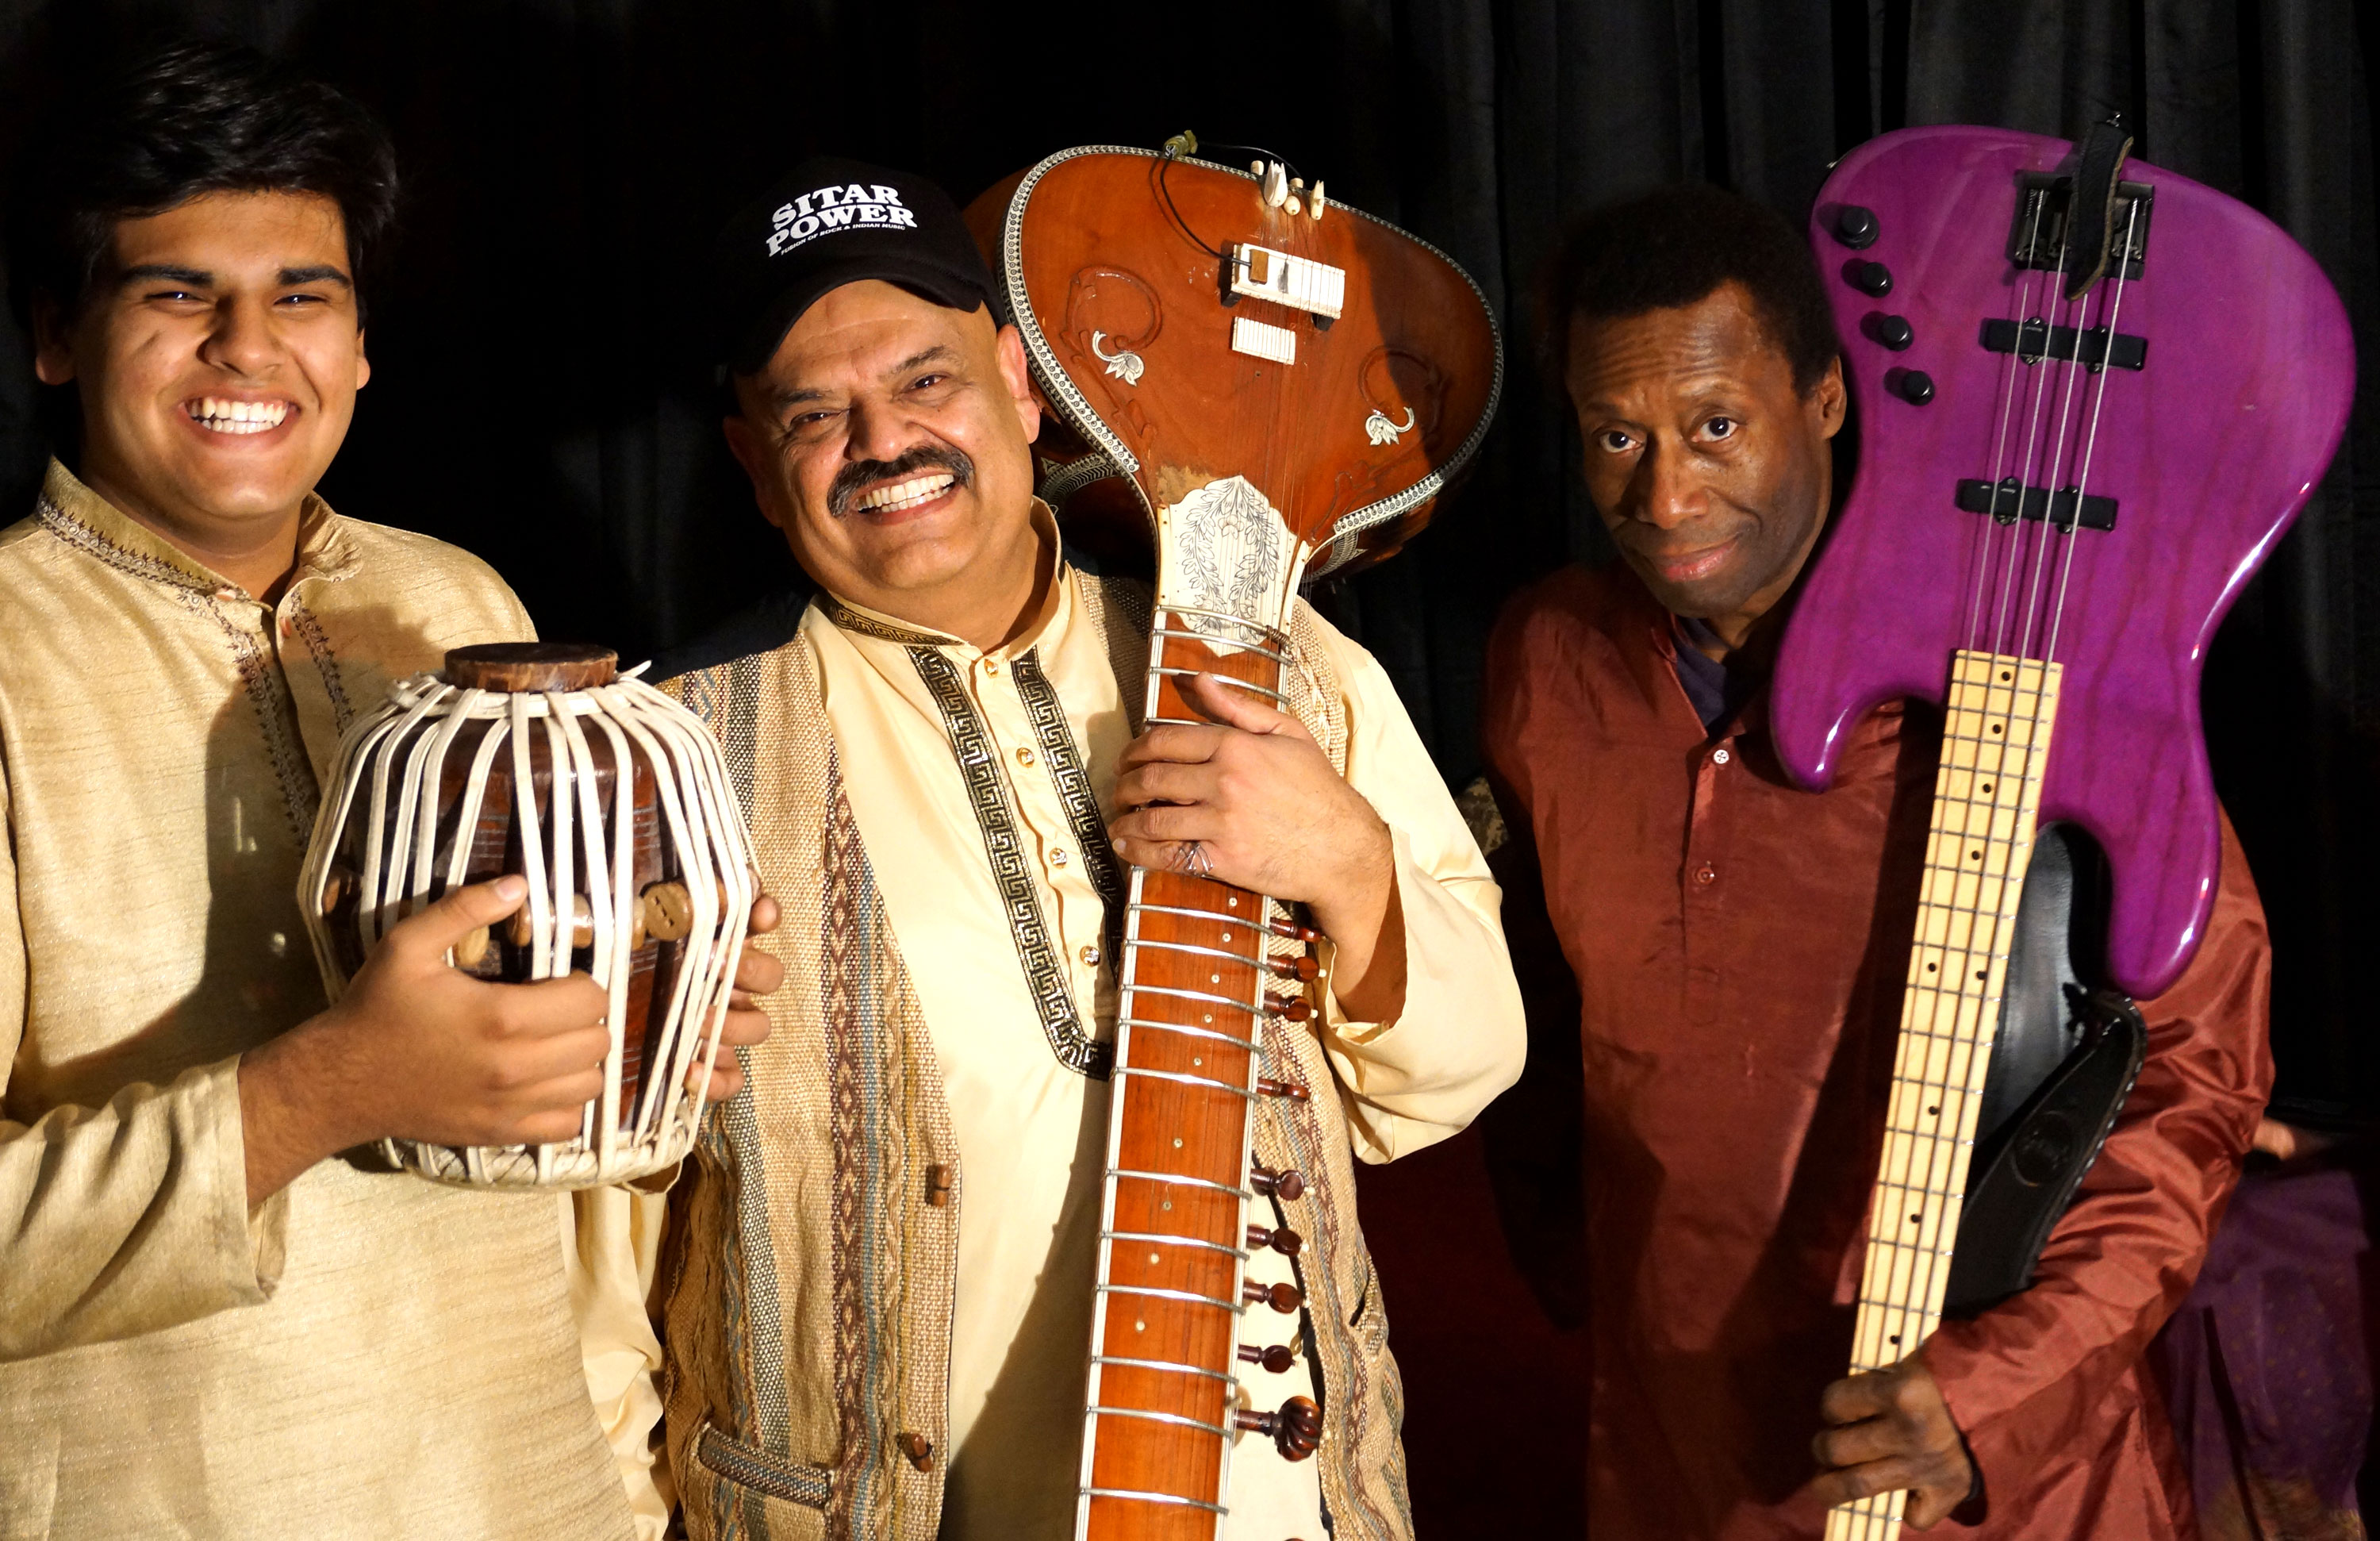 Ashwin Batish and his Sitar Power Trio: With Keshav Batish on Tabla and Drum Set, Myron Dove on Bass and Ashwin Batish on Sitar and Tabla. Picture by Mohini Batish, Santa Cruz, California, USA. All rights reserved. �2014 Batish Records. Copyrighted image.